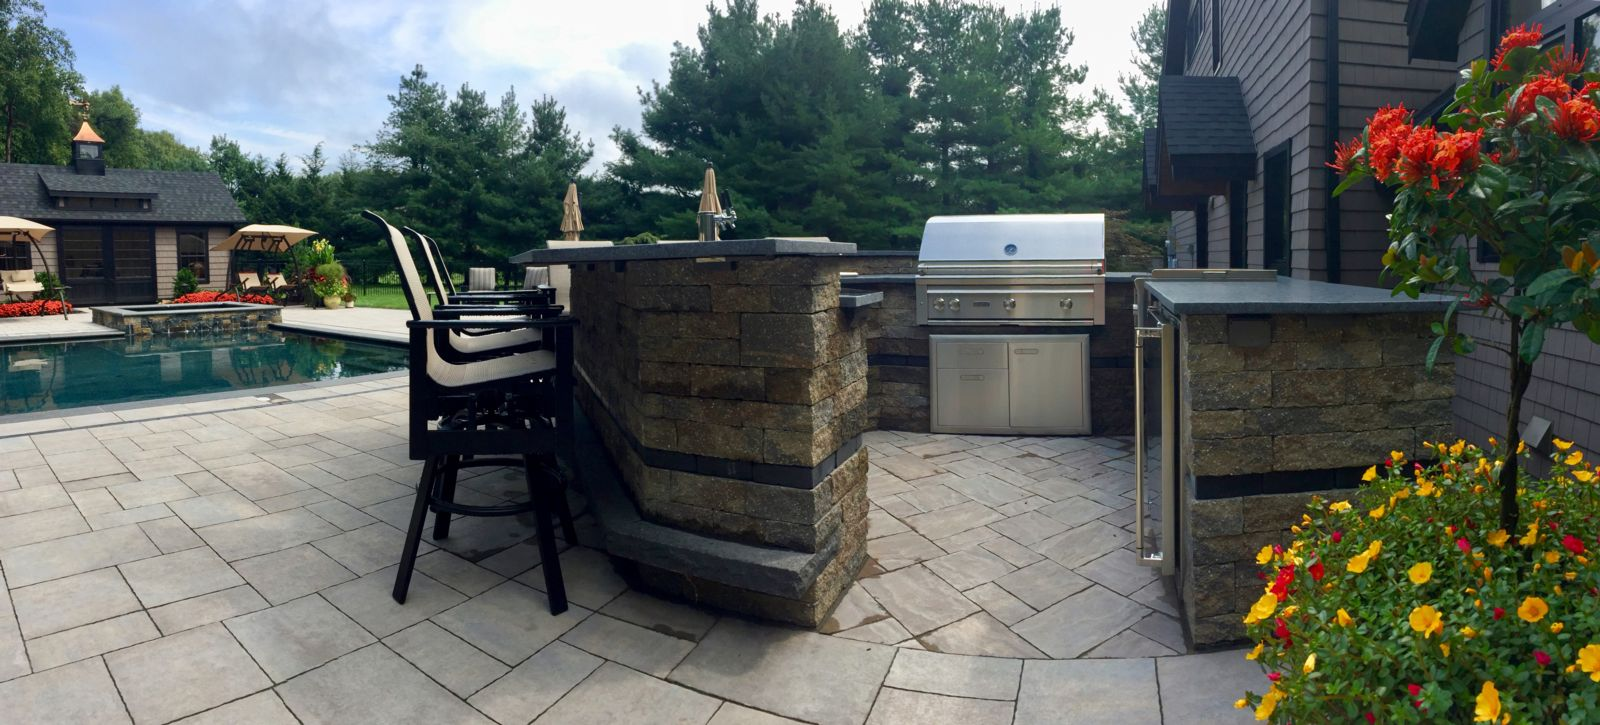 8 Must-Have Features for Your Farmington, CT, Outdoor Kitchen